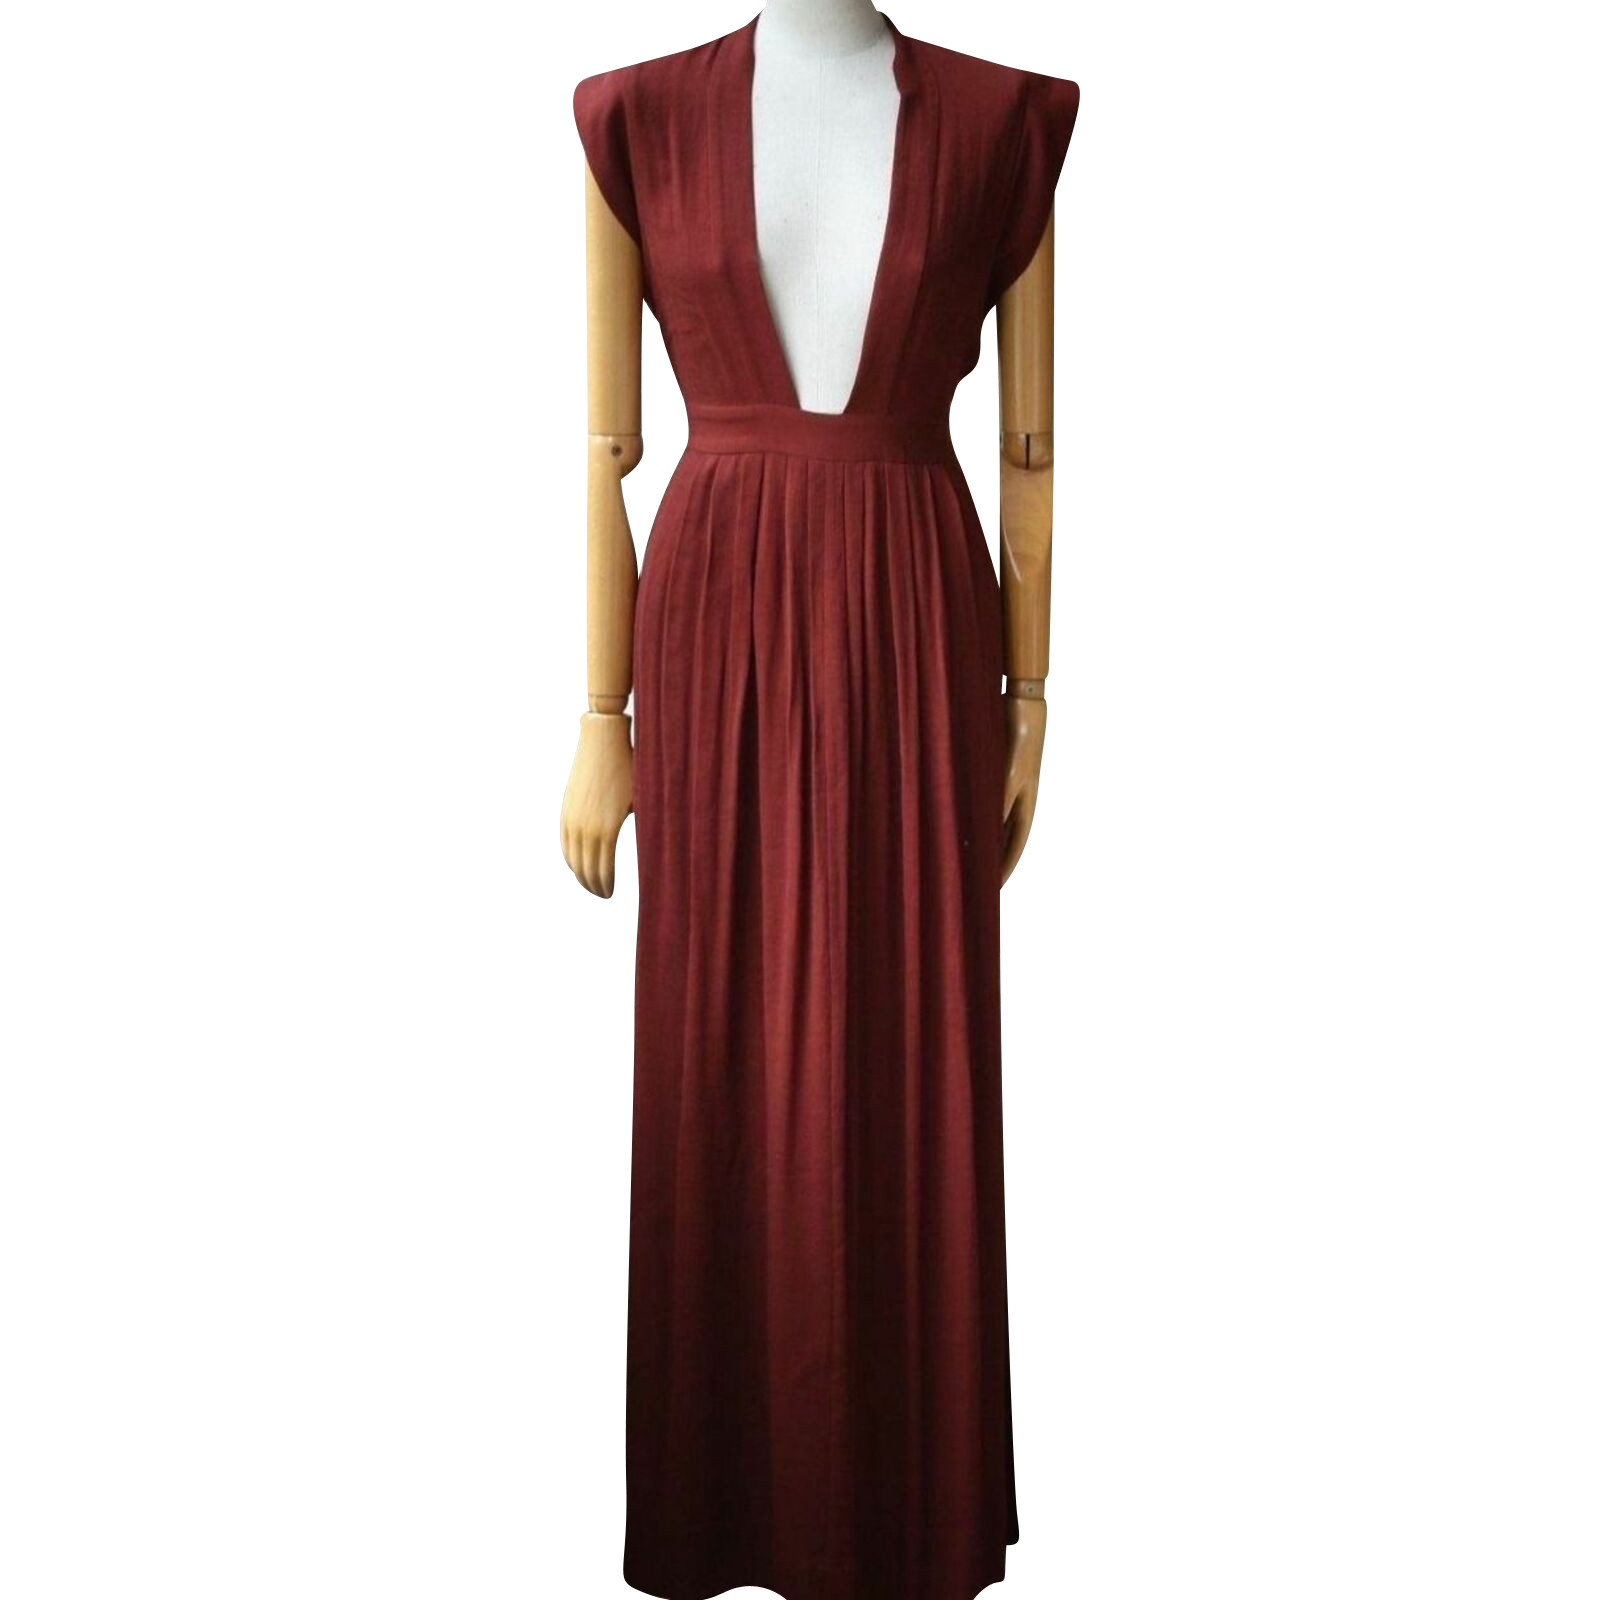 Isabel Marant Kleid in Bordeaux - Second Hand Isabel Marant Kleid